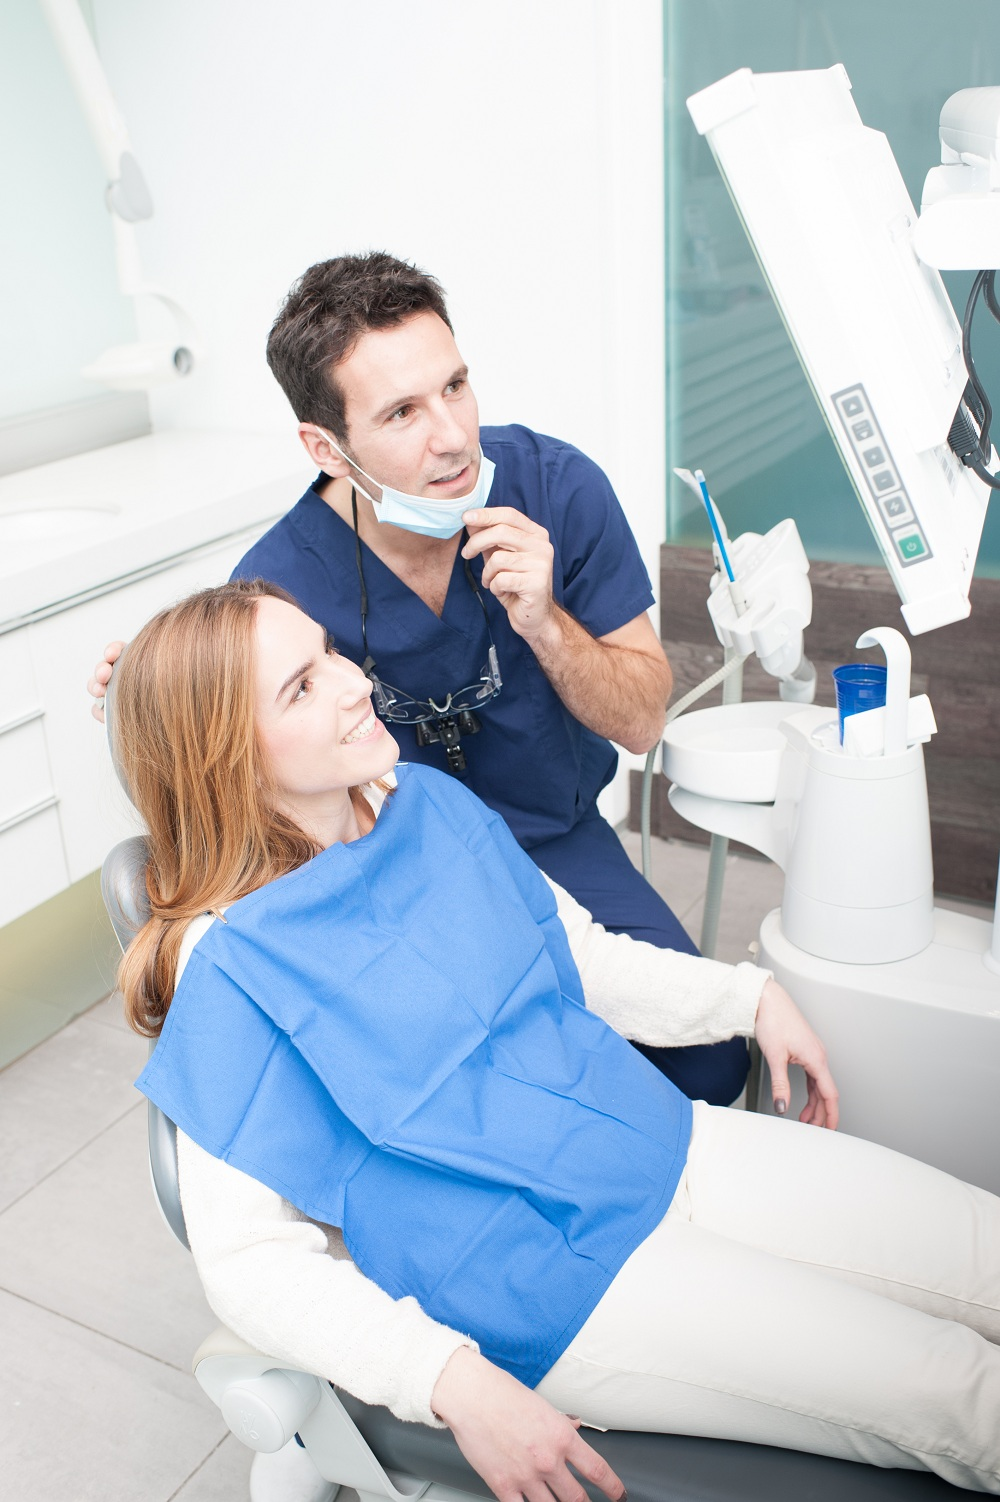 a patient at the dentist